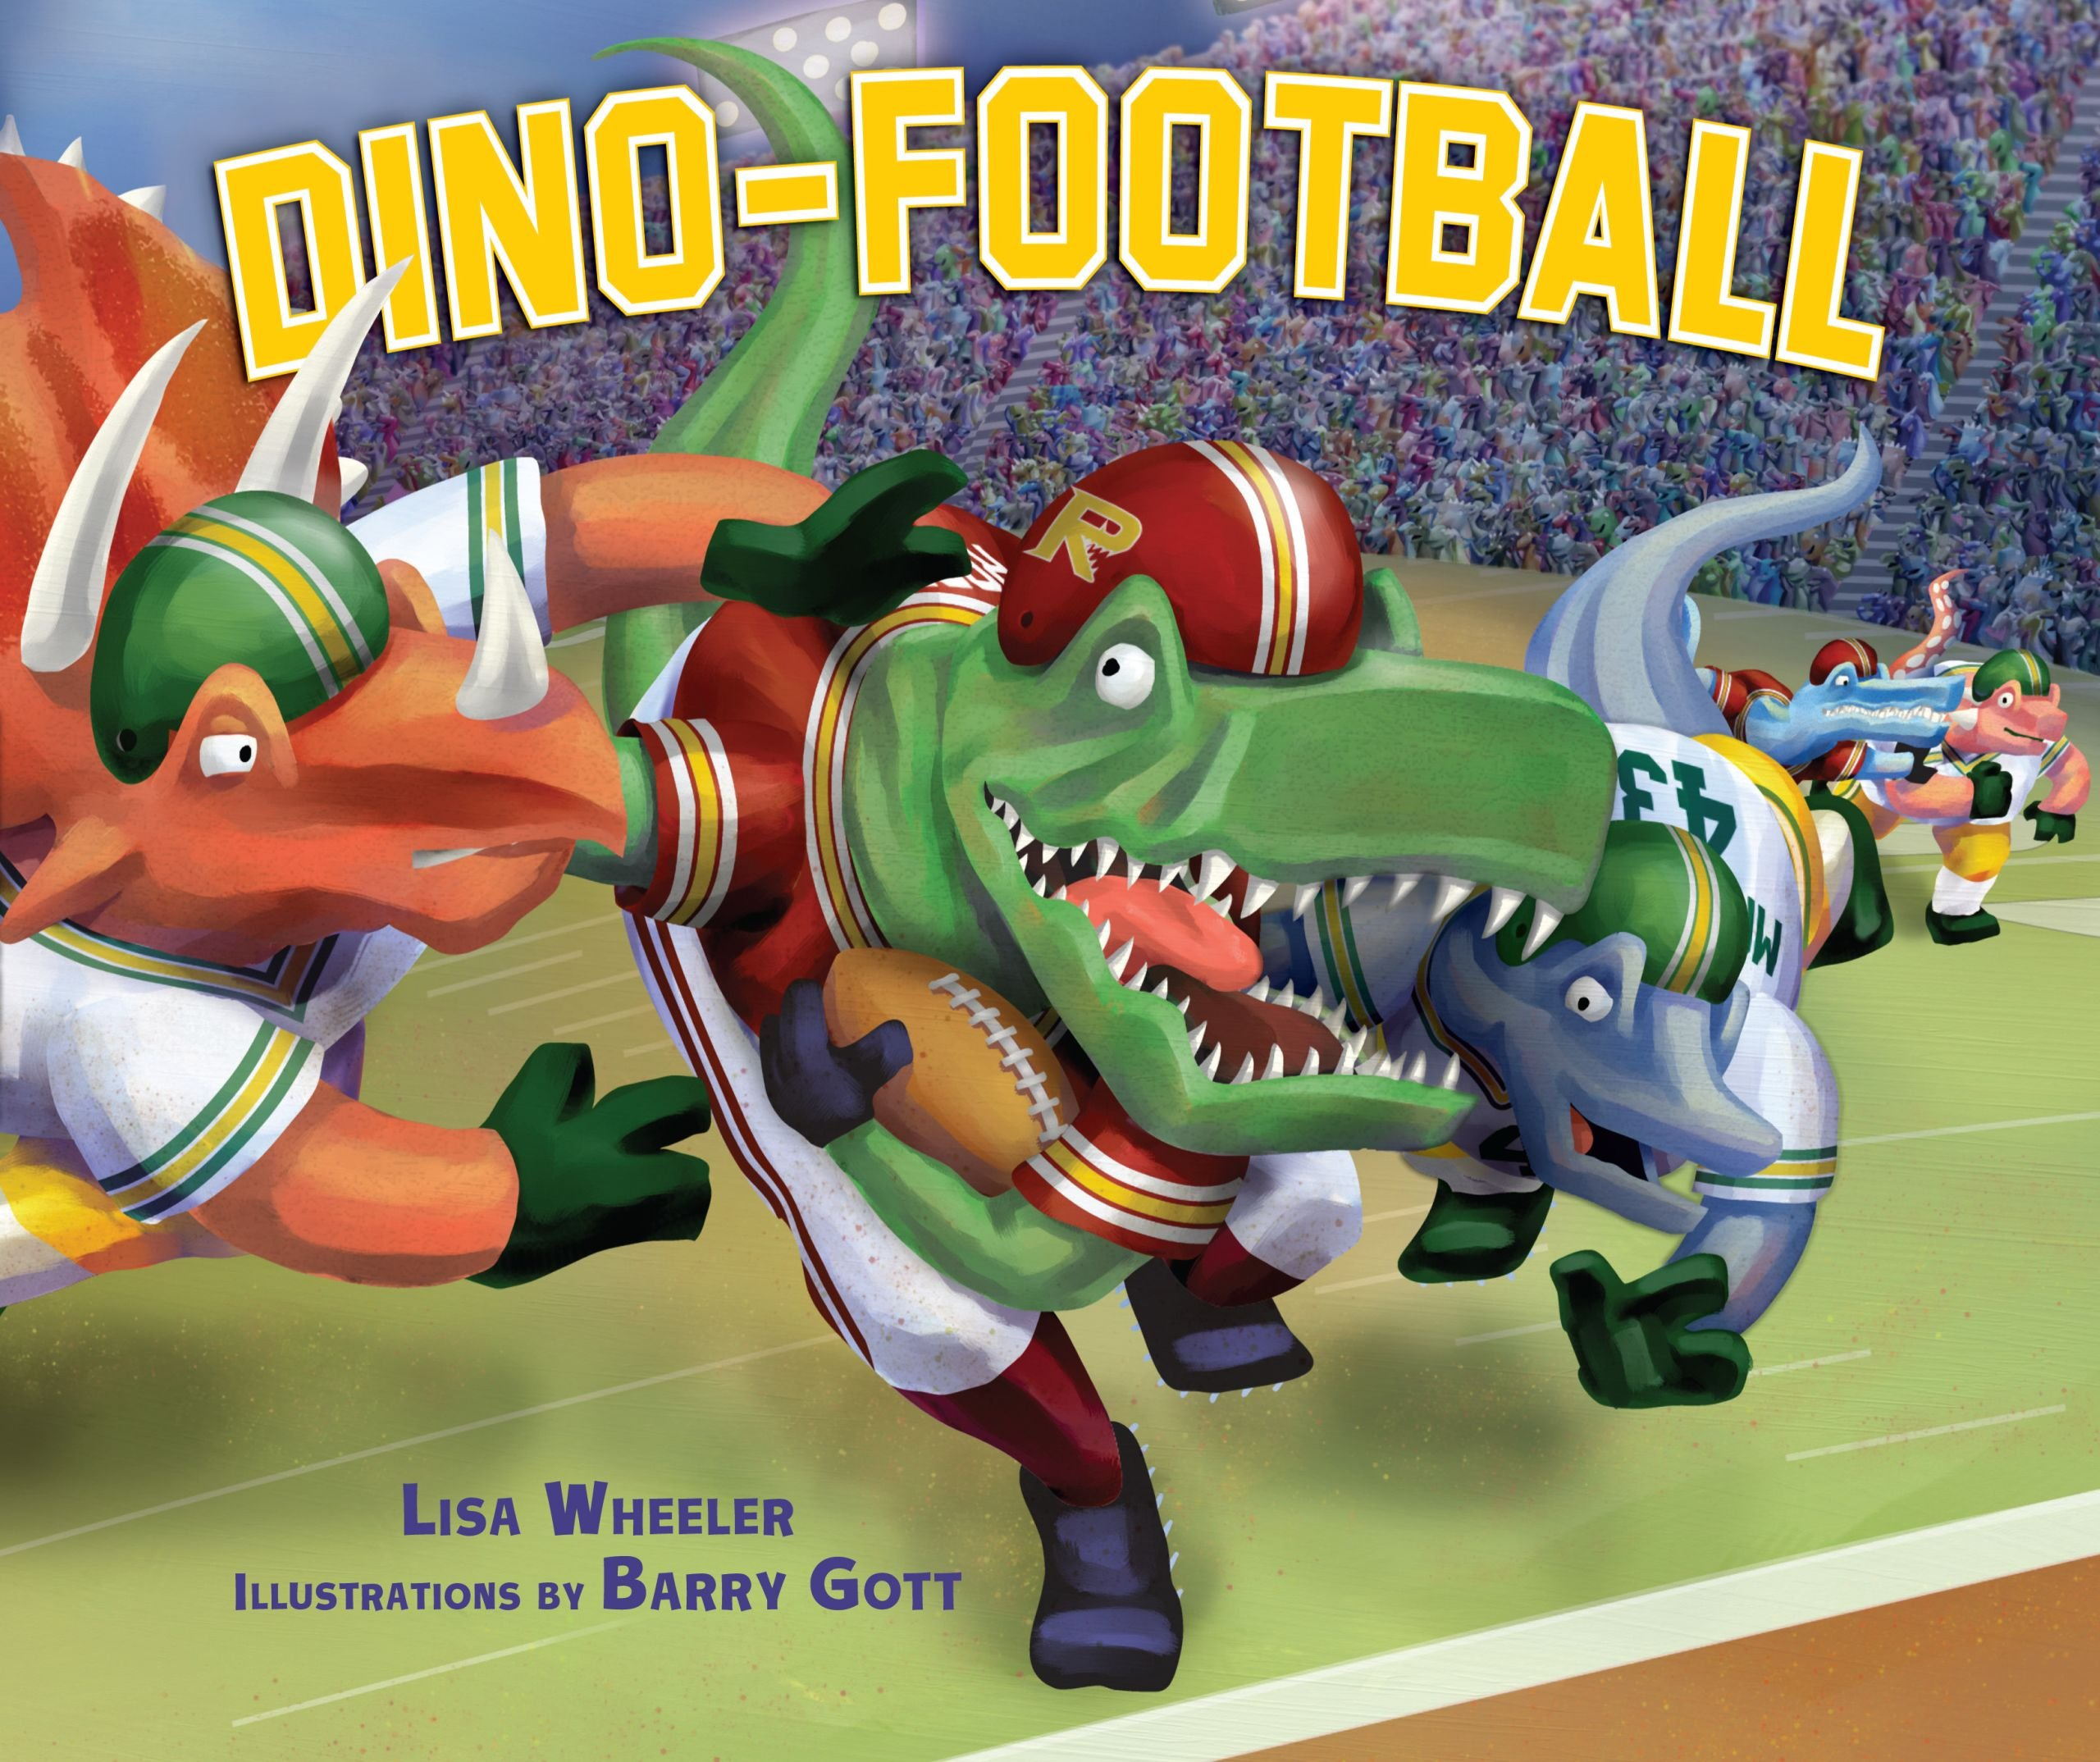 Dino-Football (Carolrhoda Picture Books) (Dino-Sports) by Carolrhoda Books (Image #1)